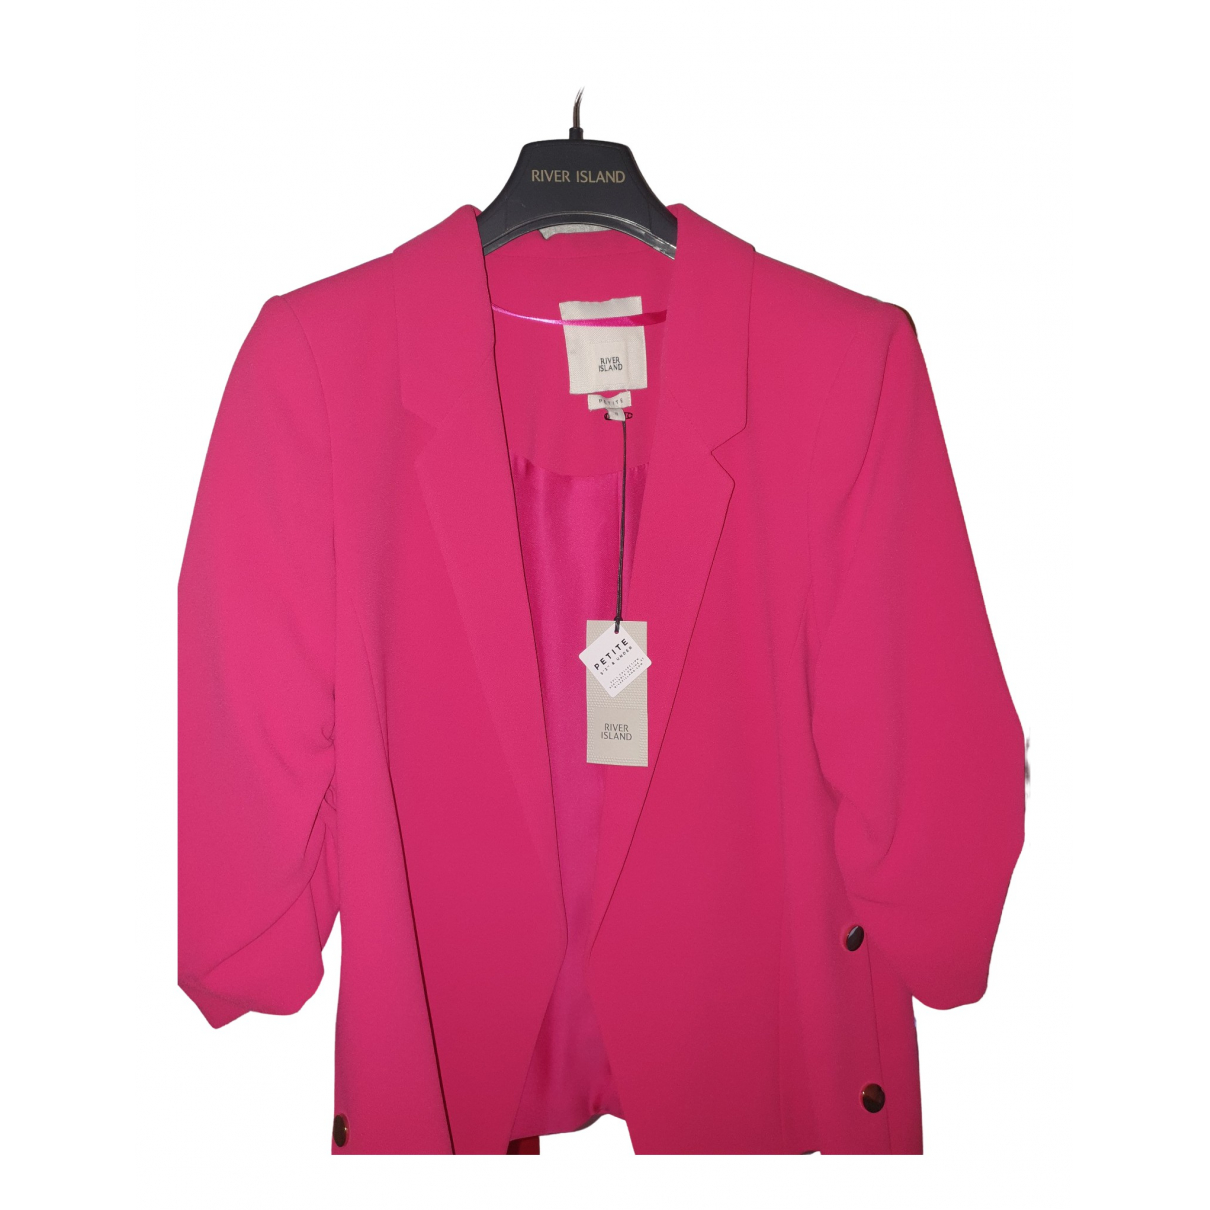 River Island \N Pink jacket for Women 8 UK